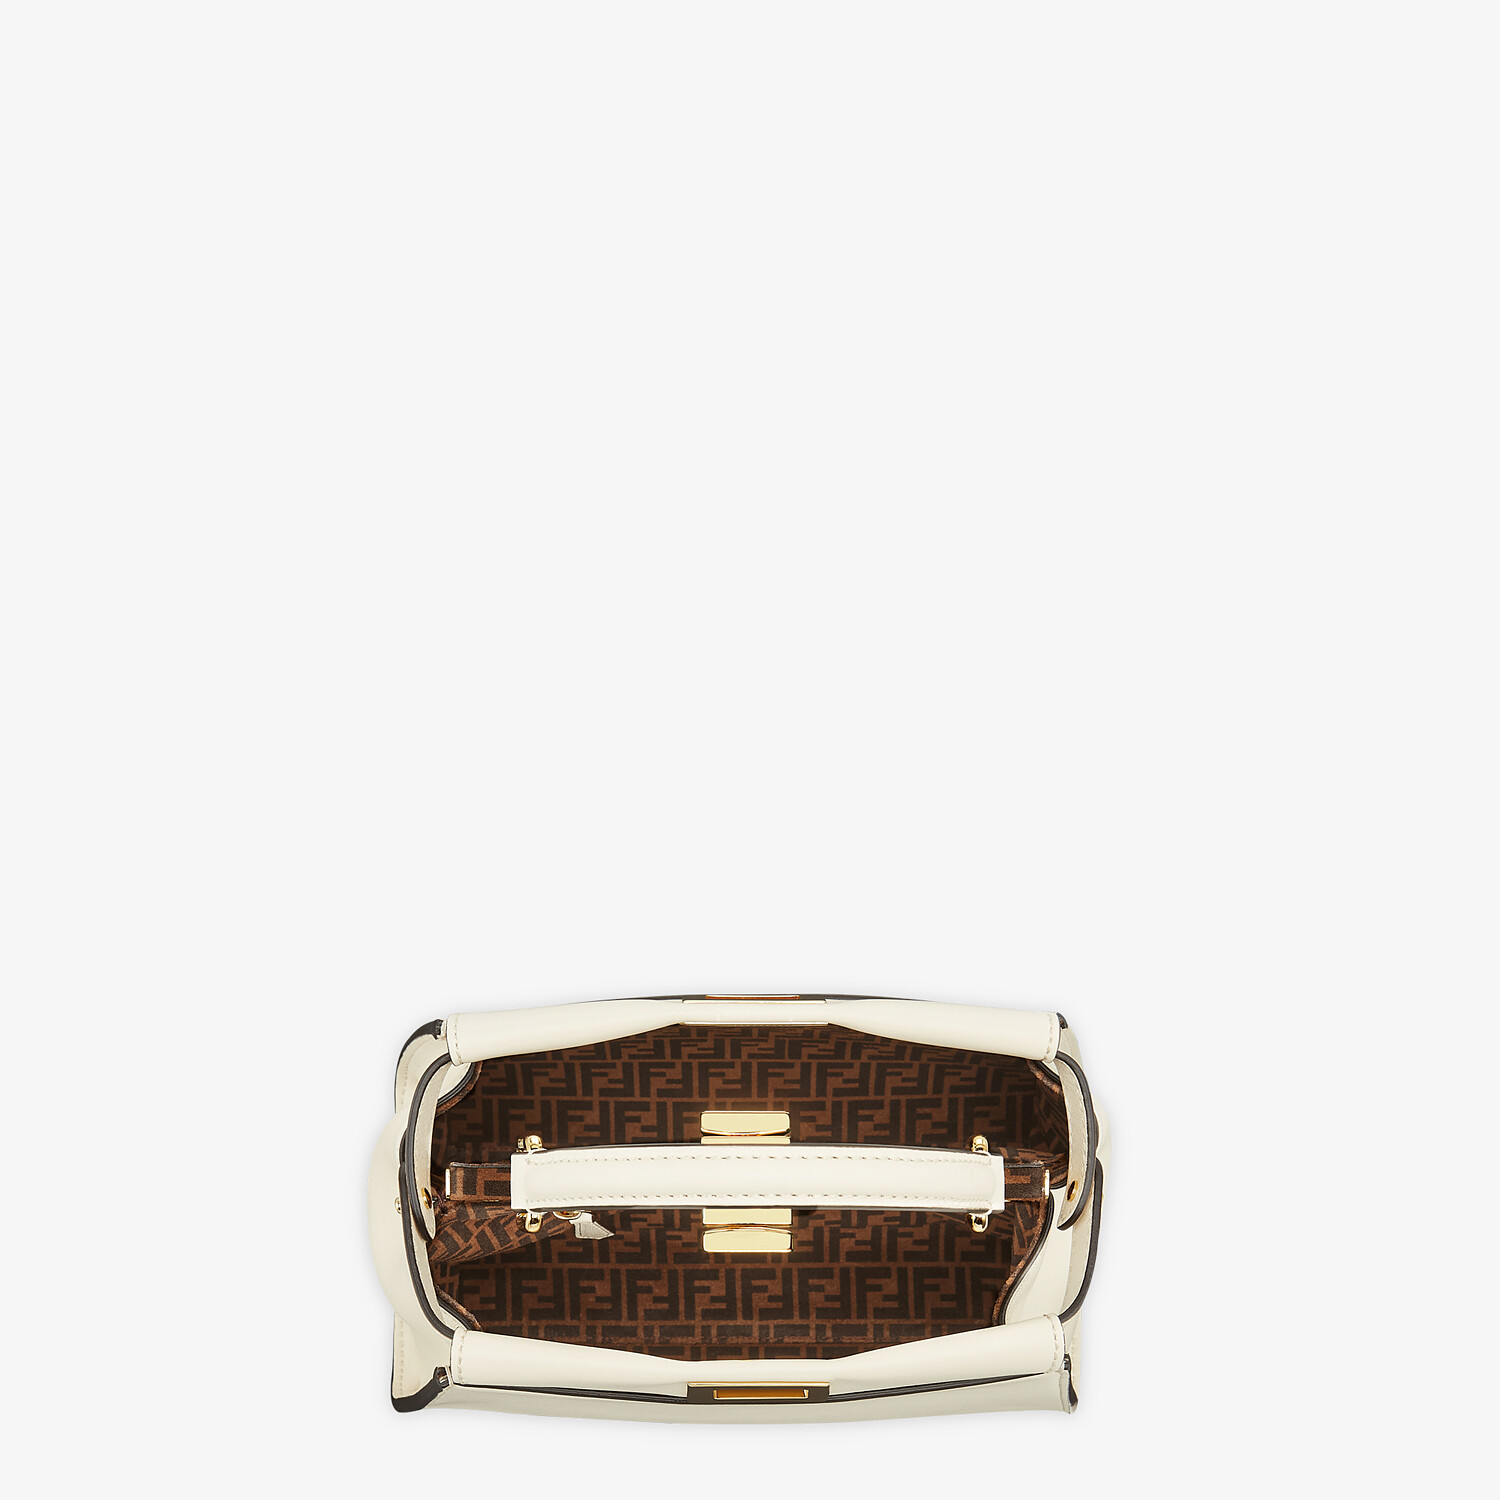 FENDI PEEKABOO ICONIC MINI - White leather bag - view 5 detail